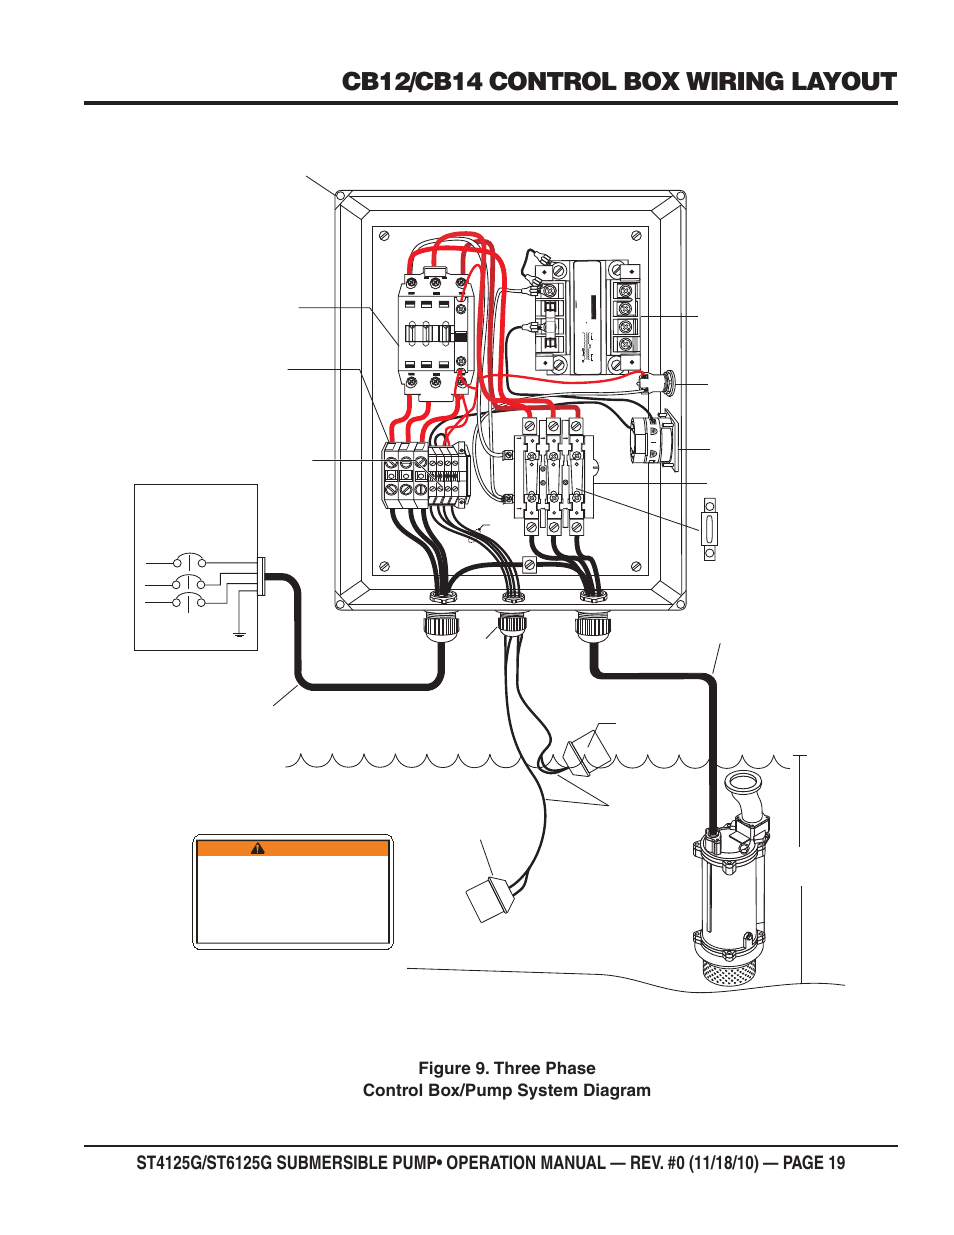 cb12  cb14 control box wiring layout  warning  ac power